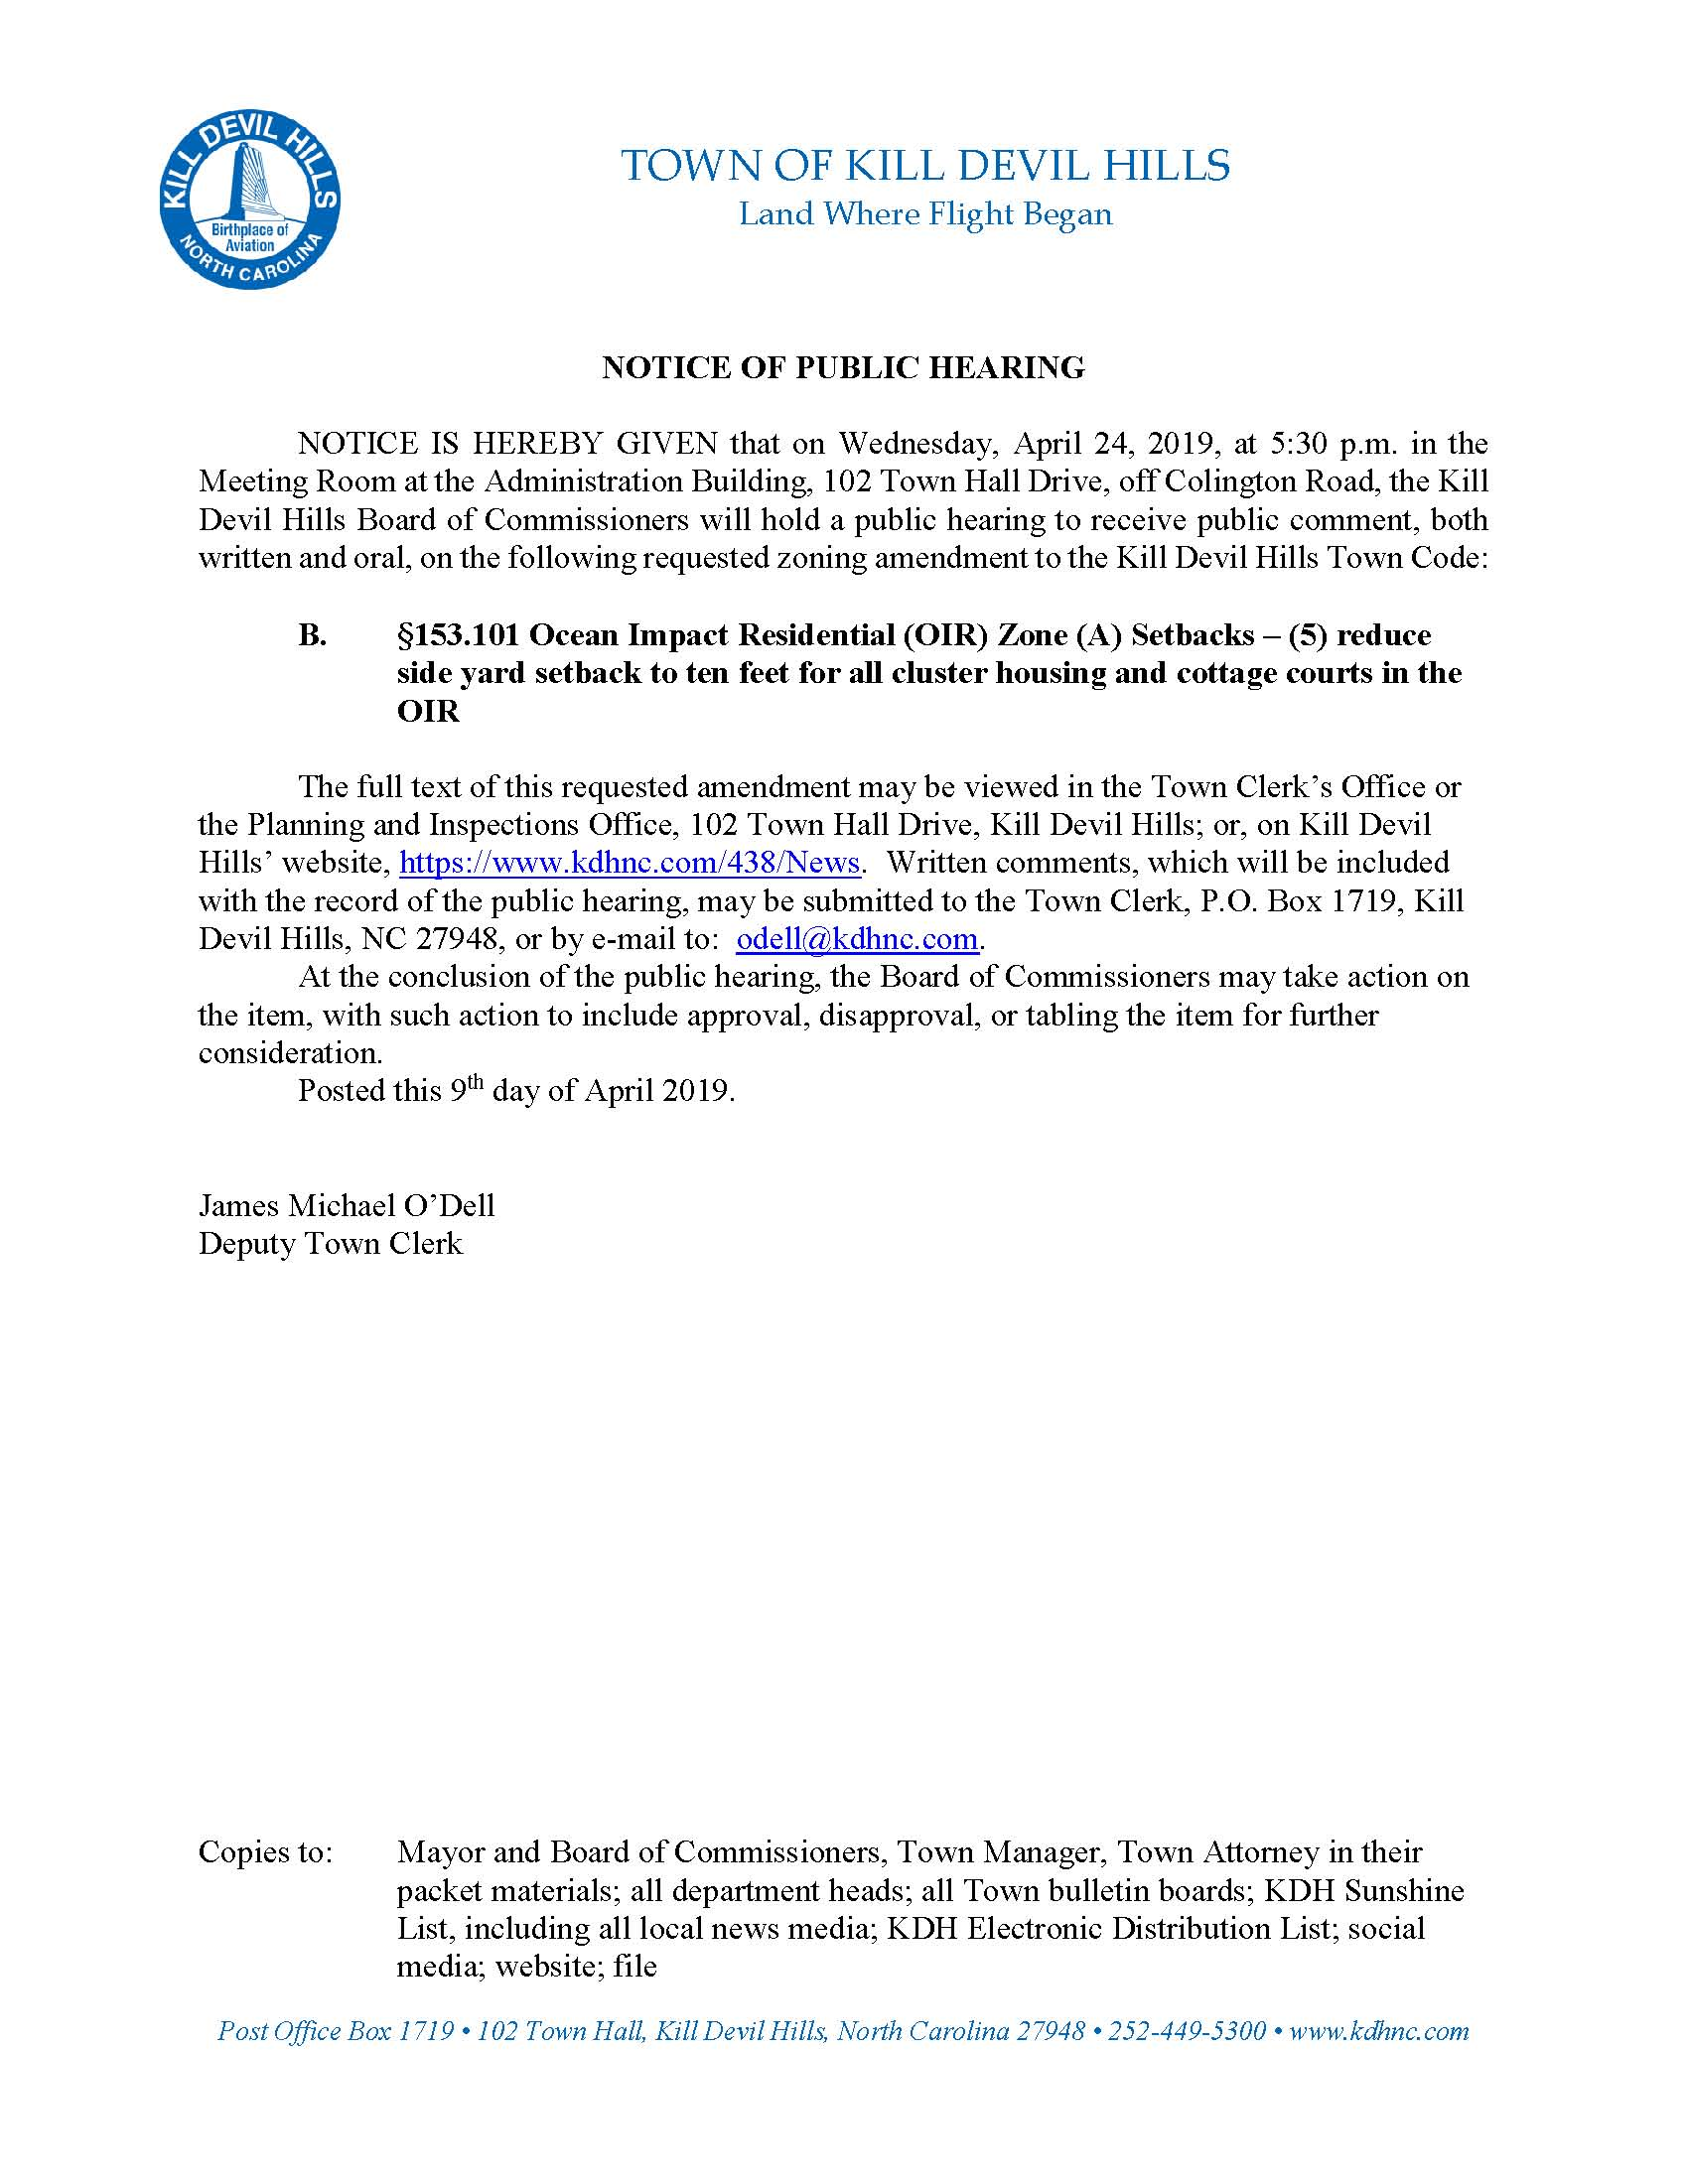 4.24.2019 Kill Devil Hills Board of Commissioners OIRZS Public Hearing Notice